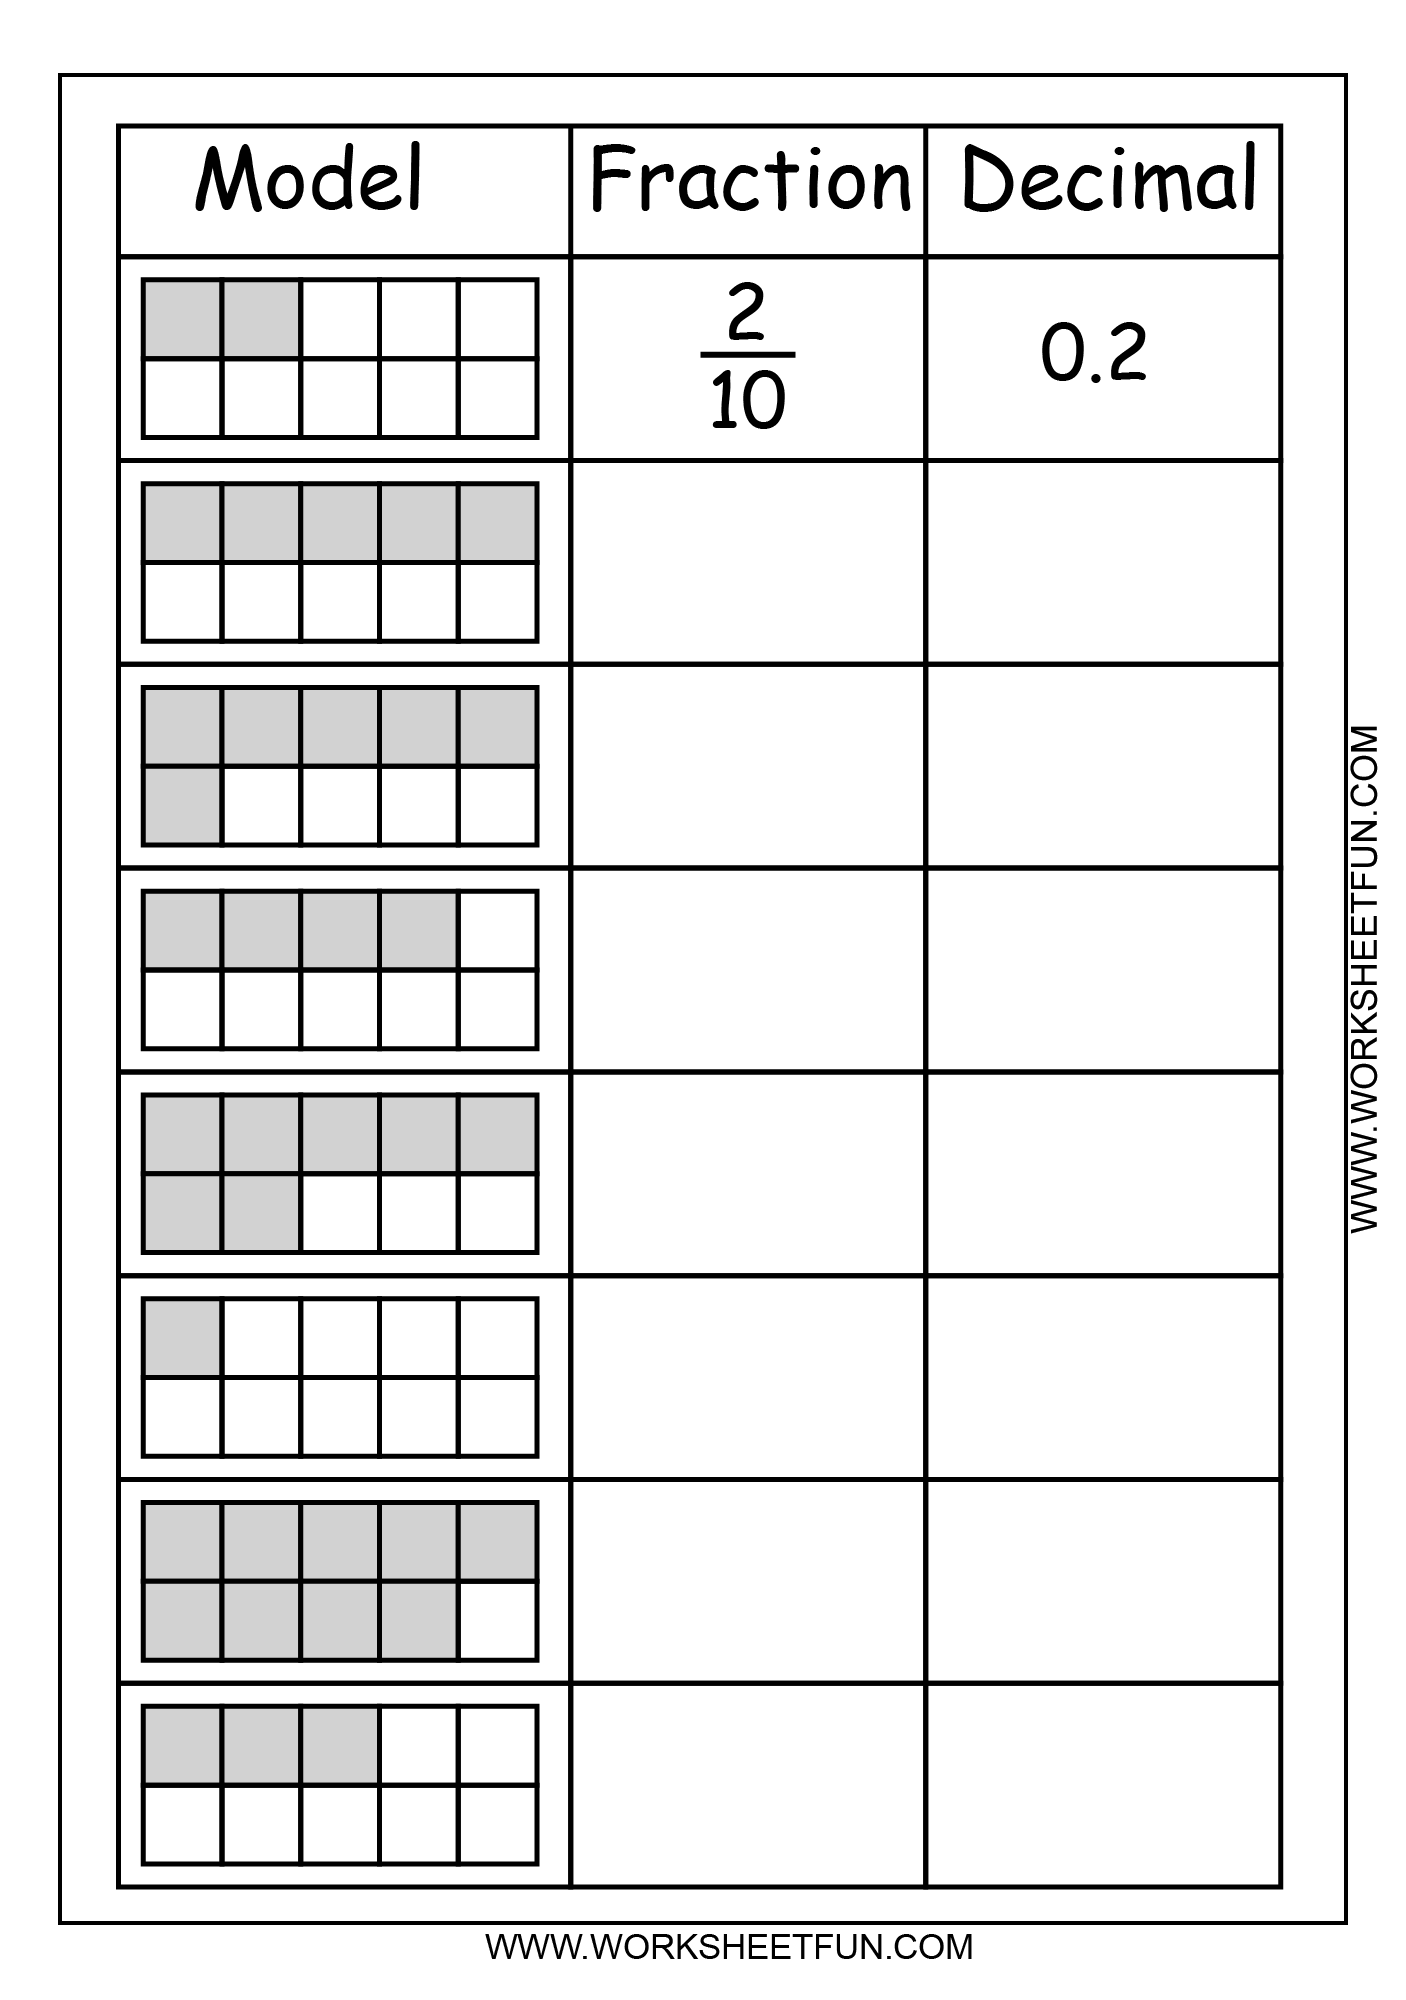 medium resolution of Model – Fraction – Decimal – 2 Worksheets   Math fractions